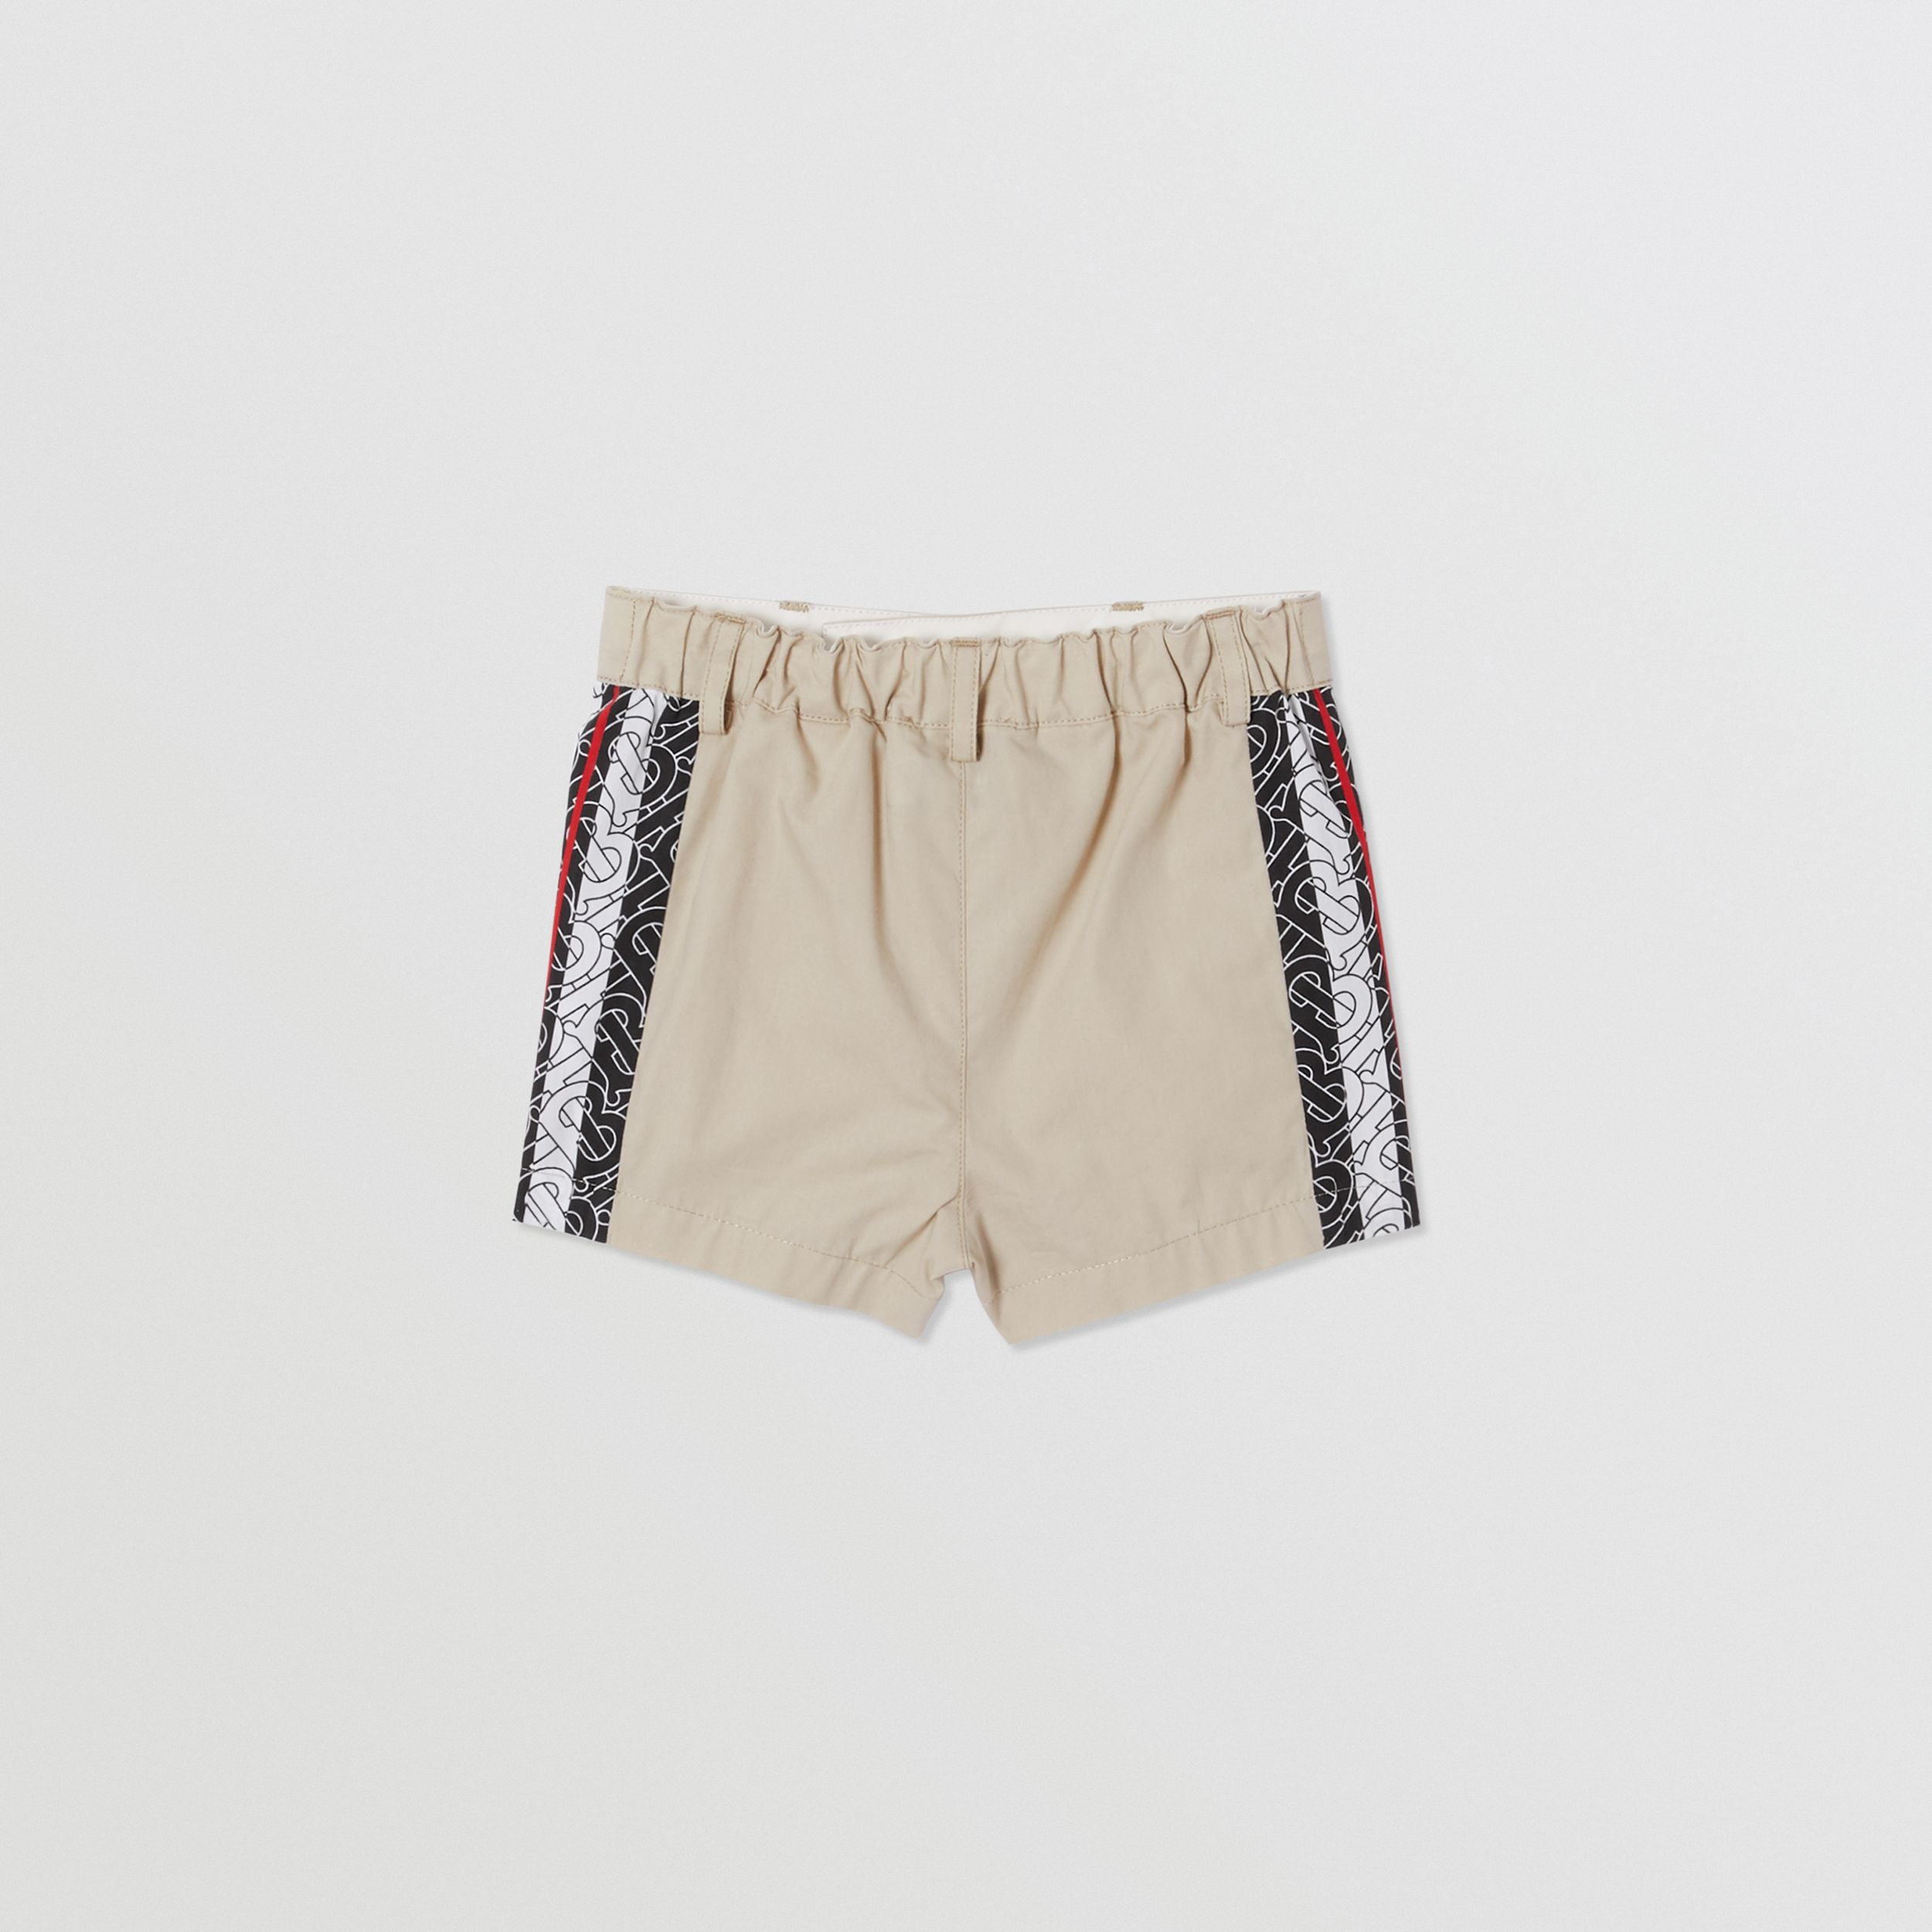 Monogram Stripe Print Cotton Tailored Shorts in Stone - Children | Burberry - 4